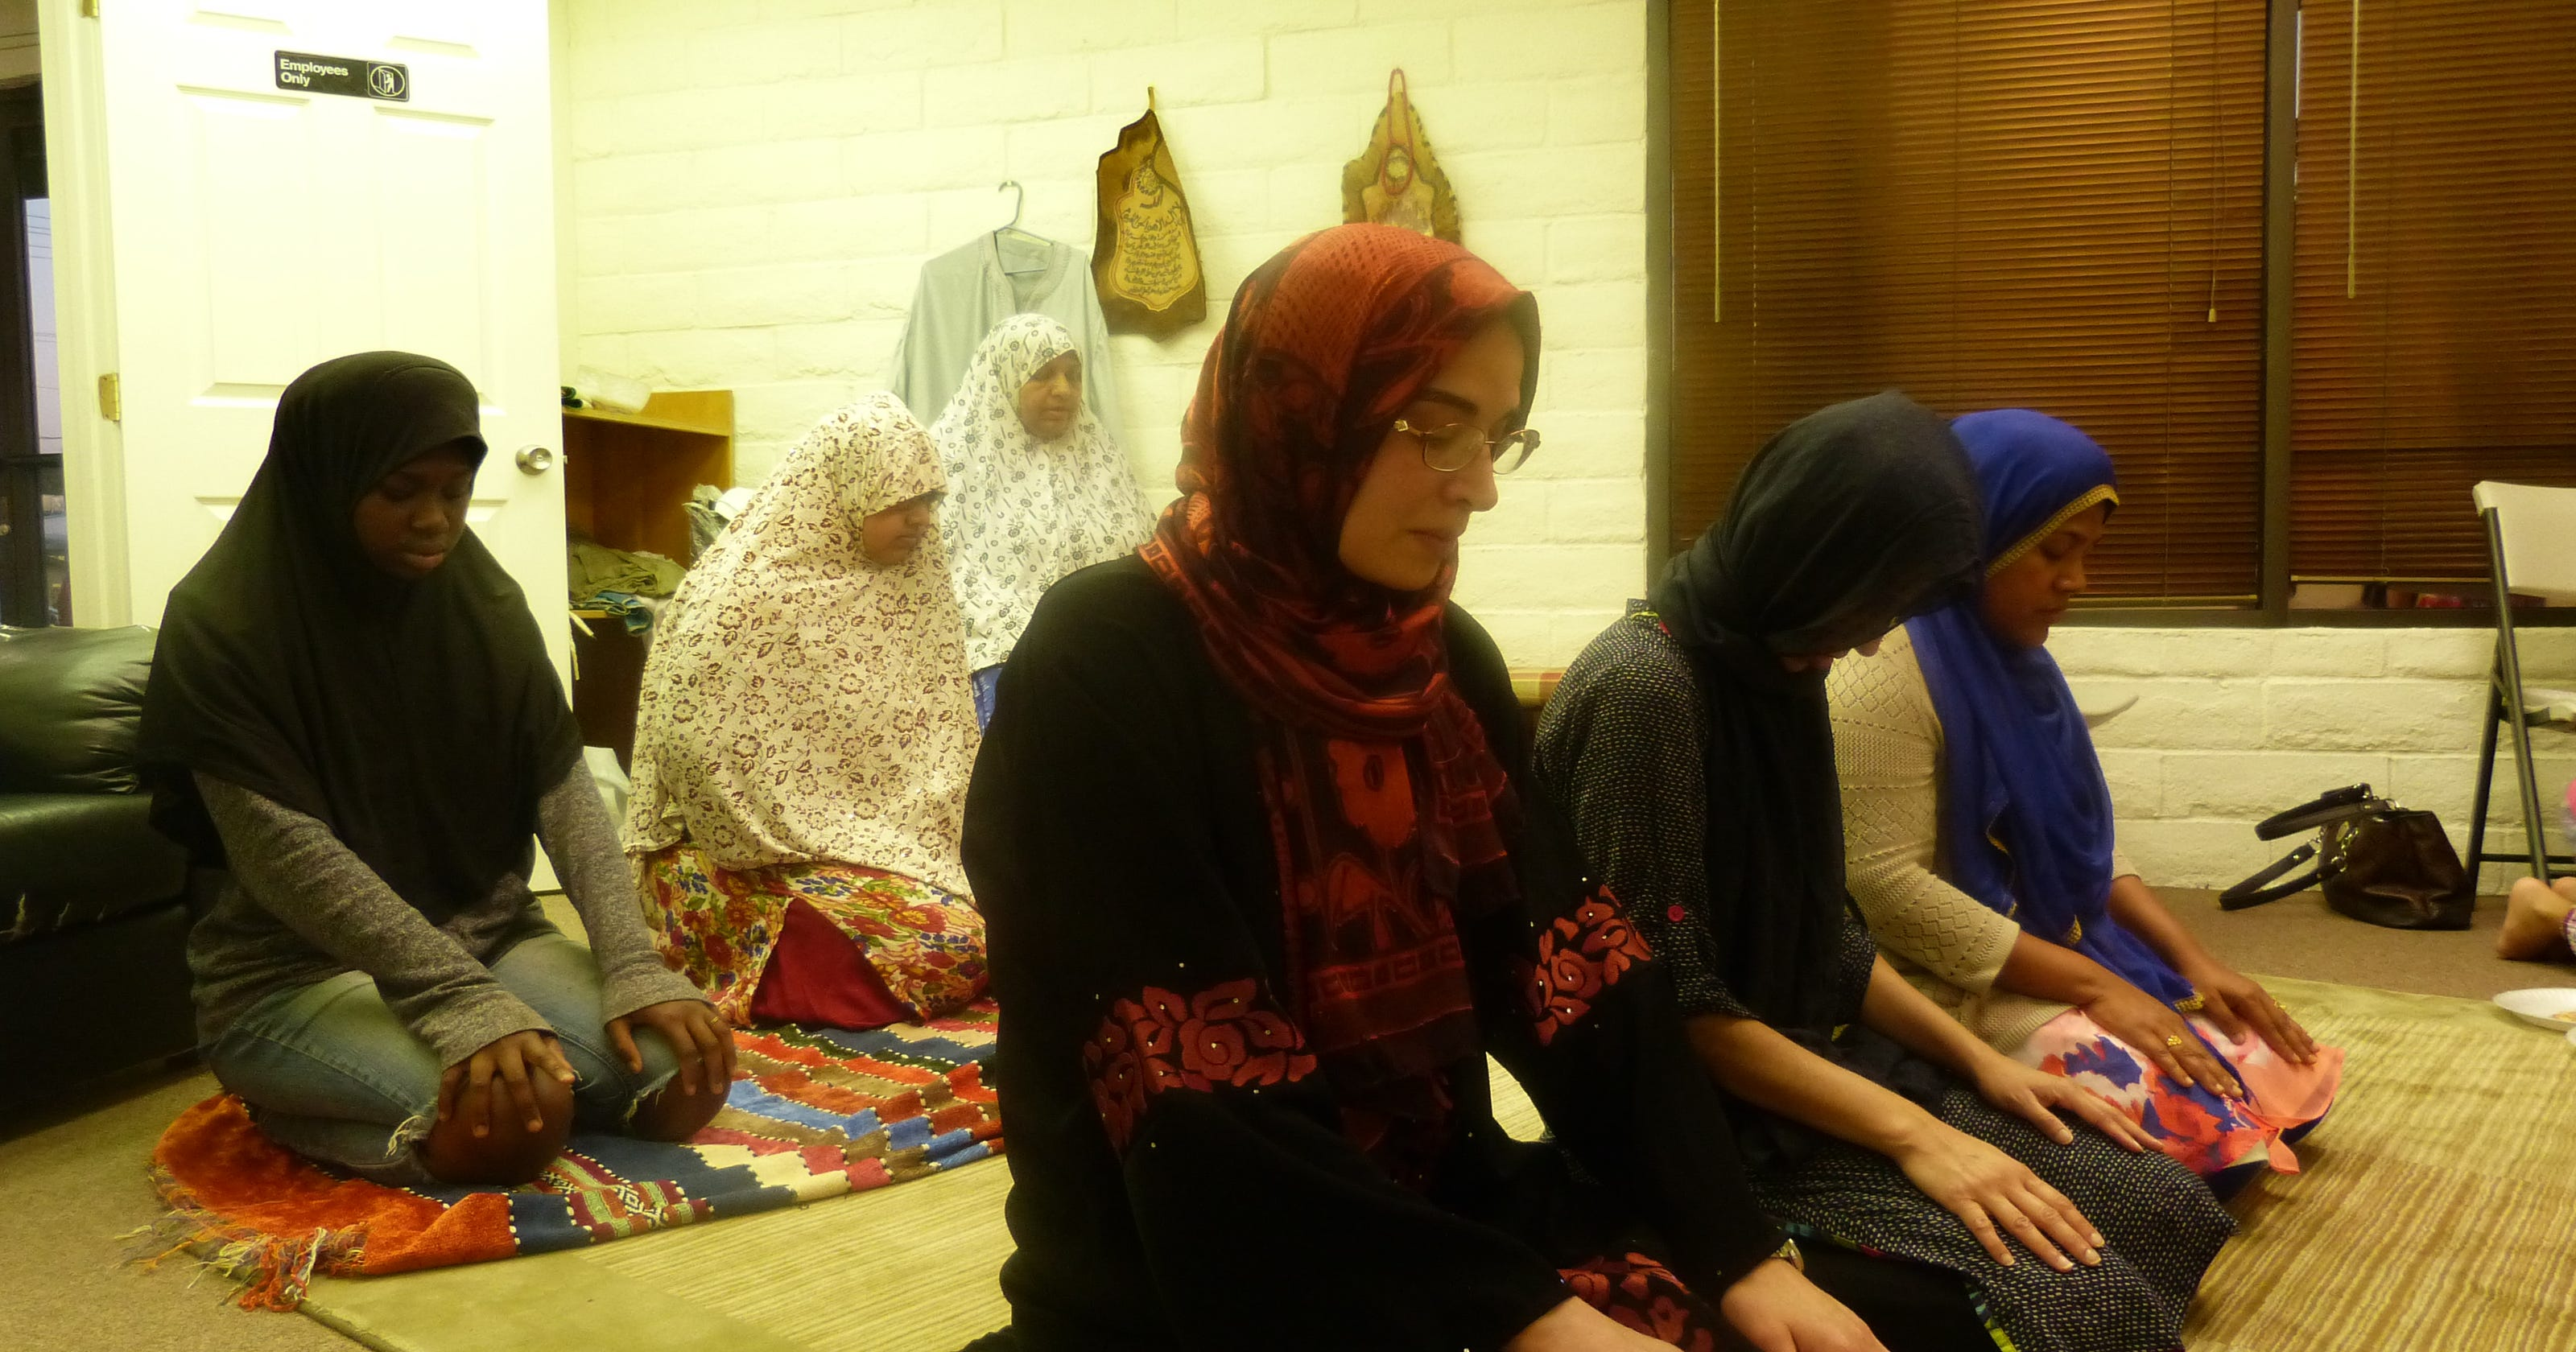 Ramadan: A time of reflection, prayer and family